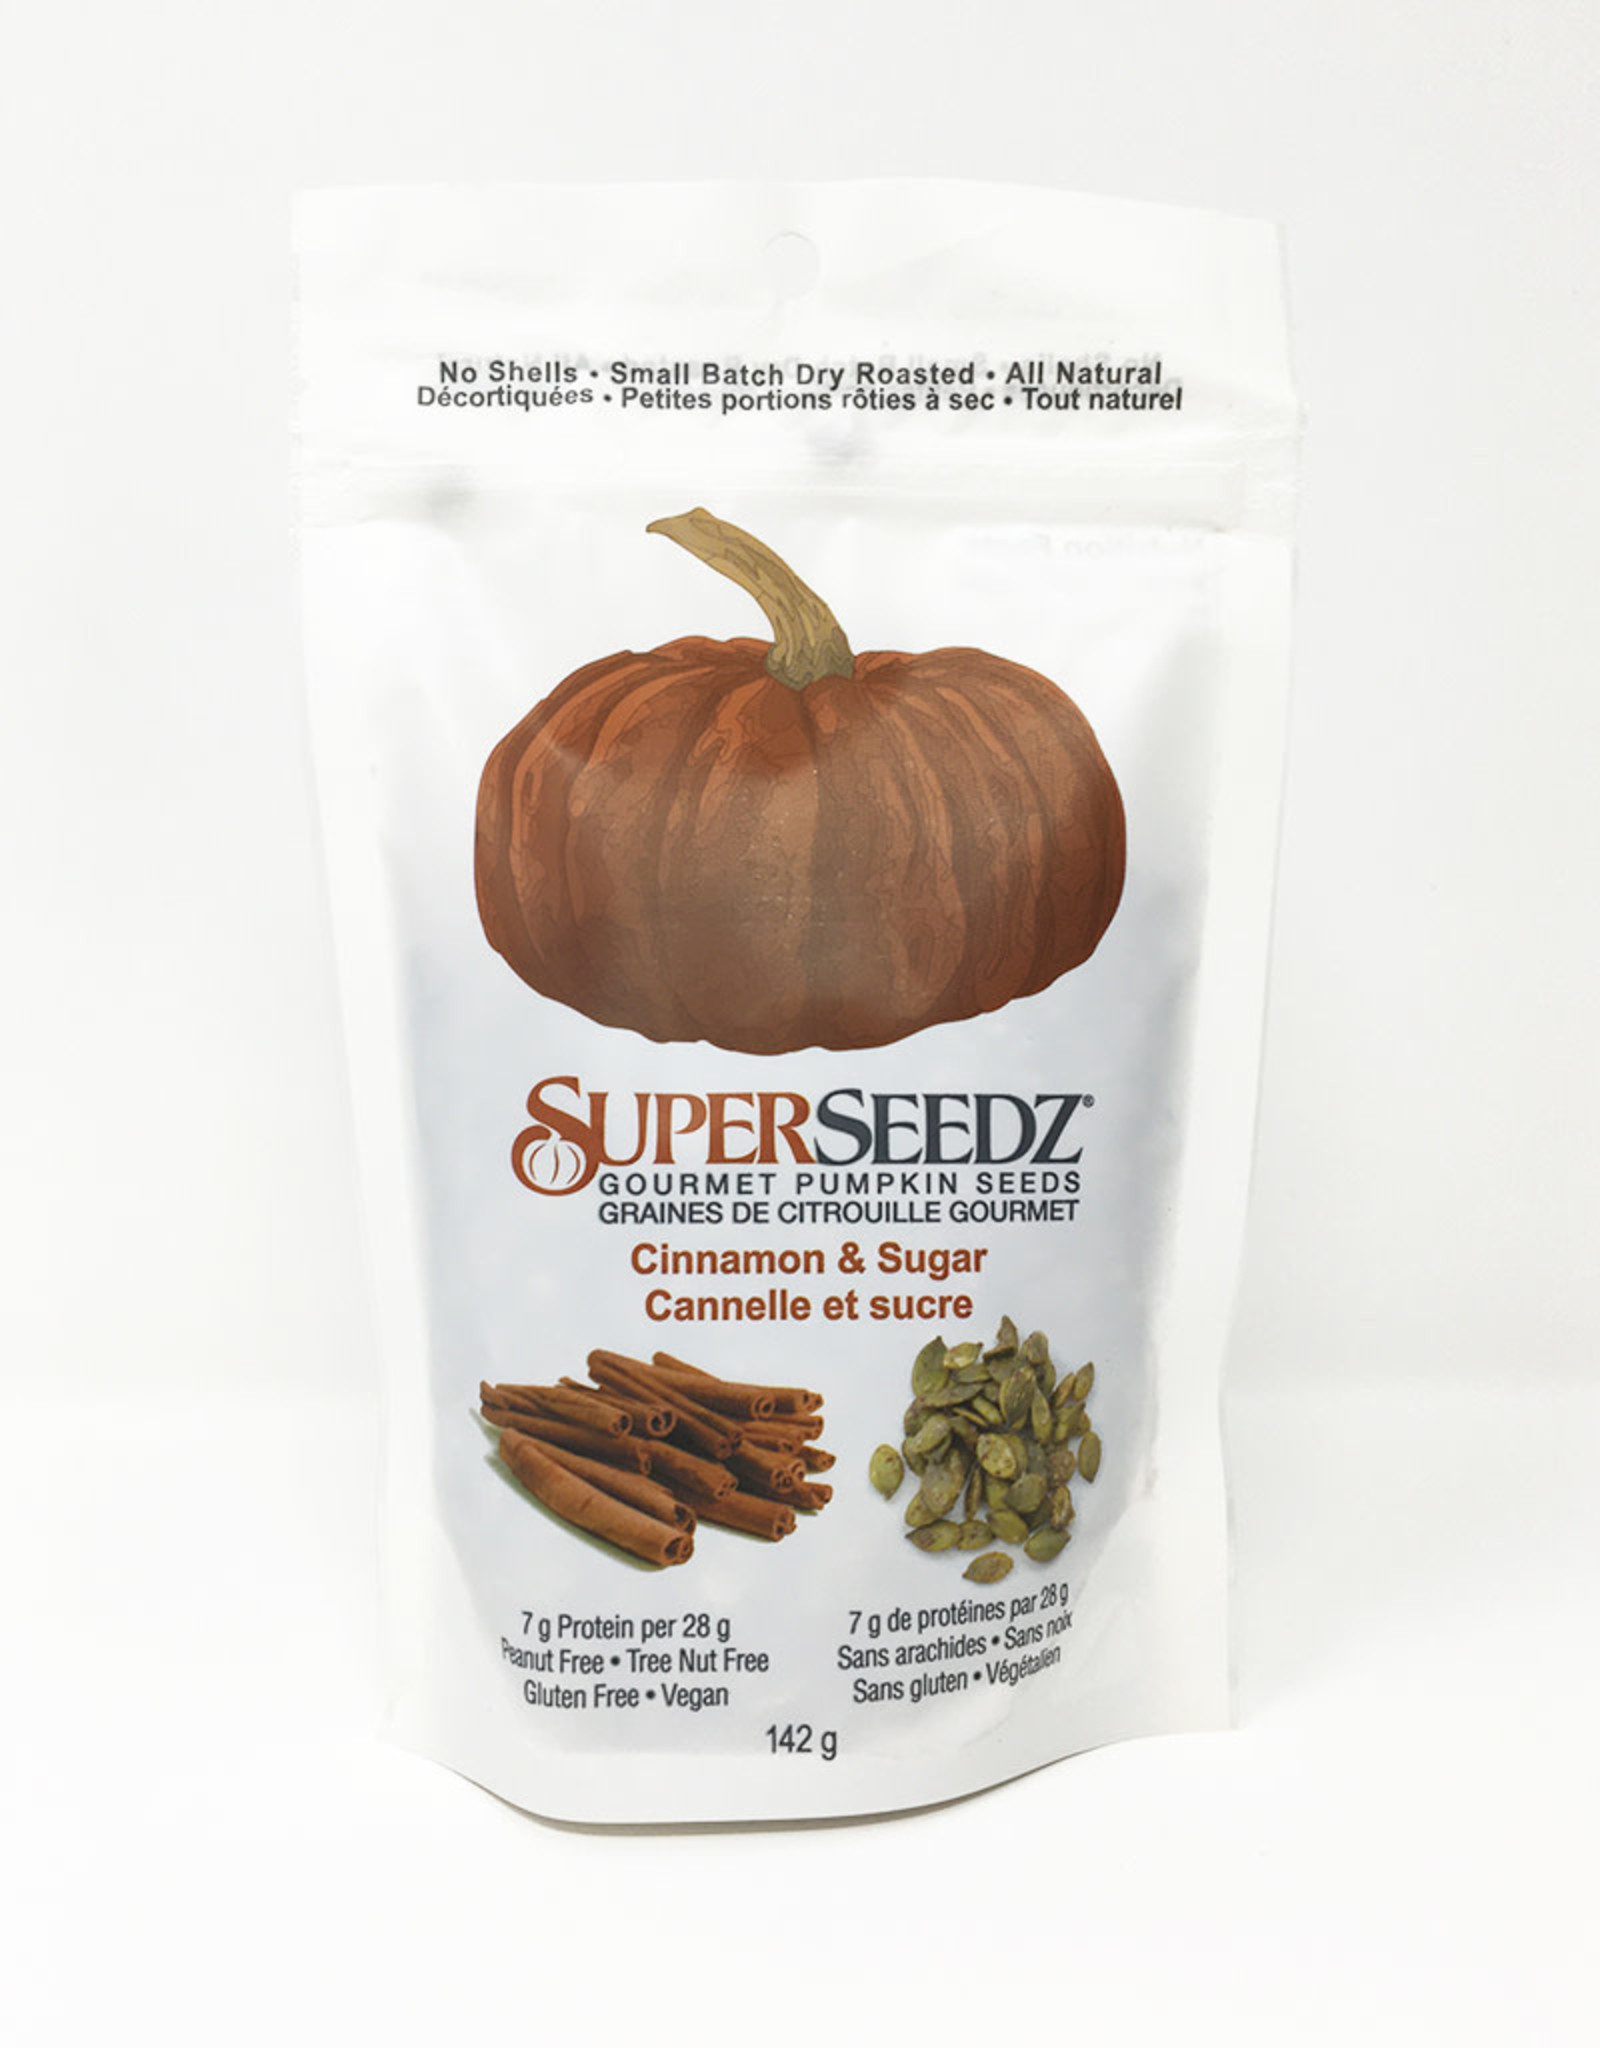 Superseedz Superseedz - Gourmet Pumpkin Seeds, Cinnamon & Sugar (142g)